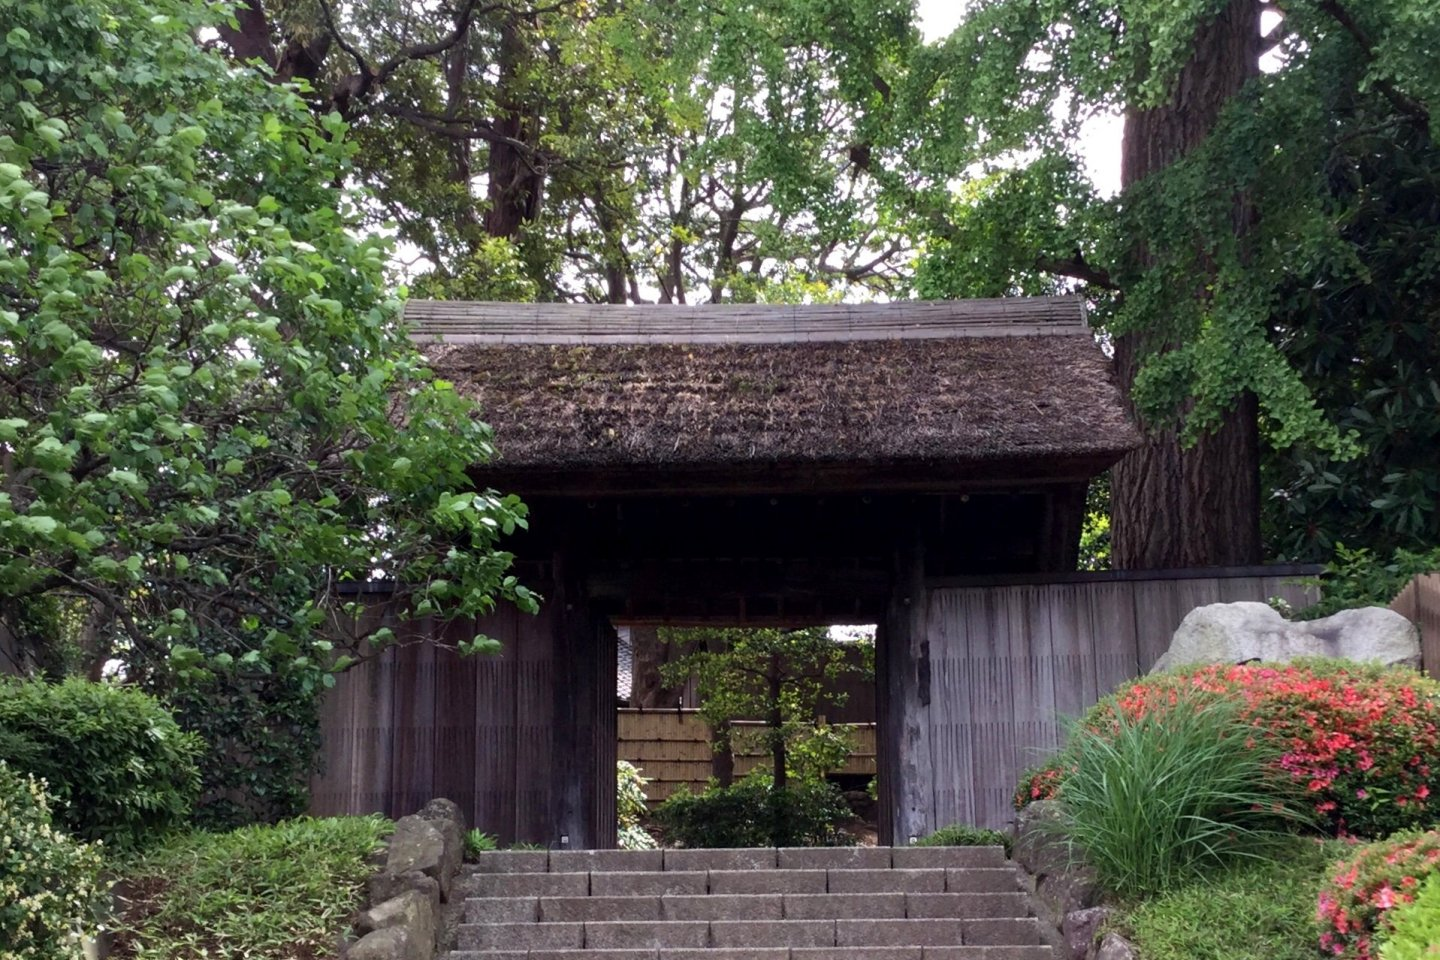 The gate to the house and garden on a slope above Matsudo City